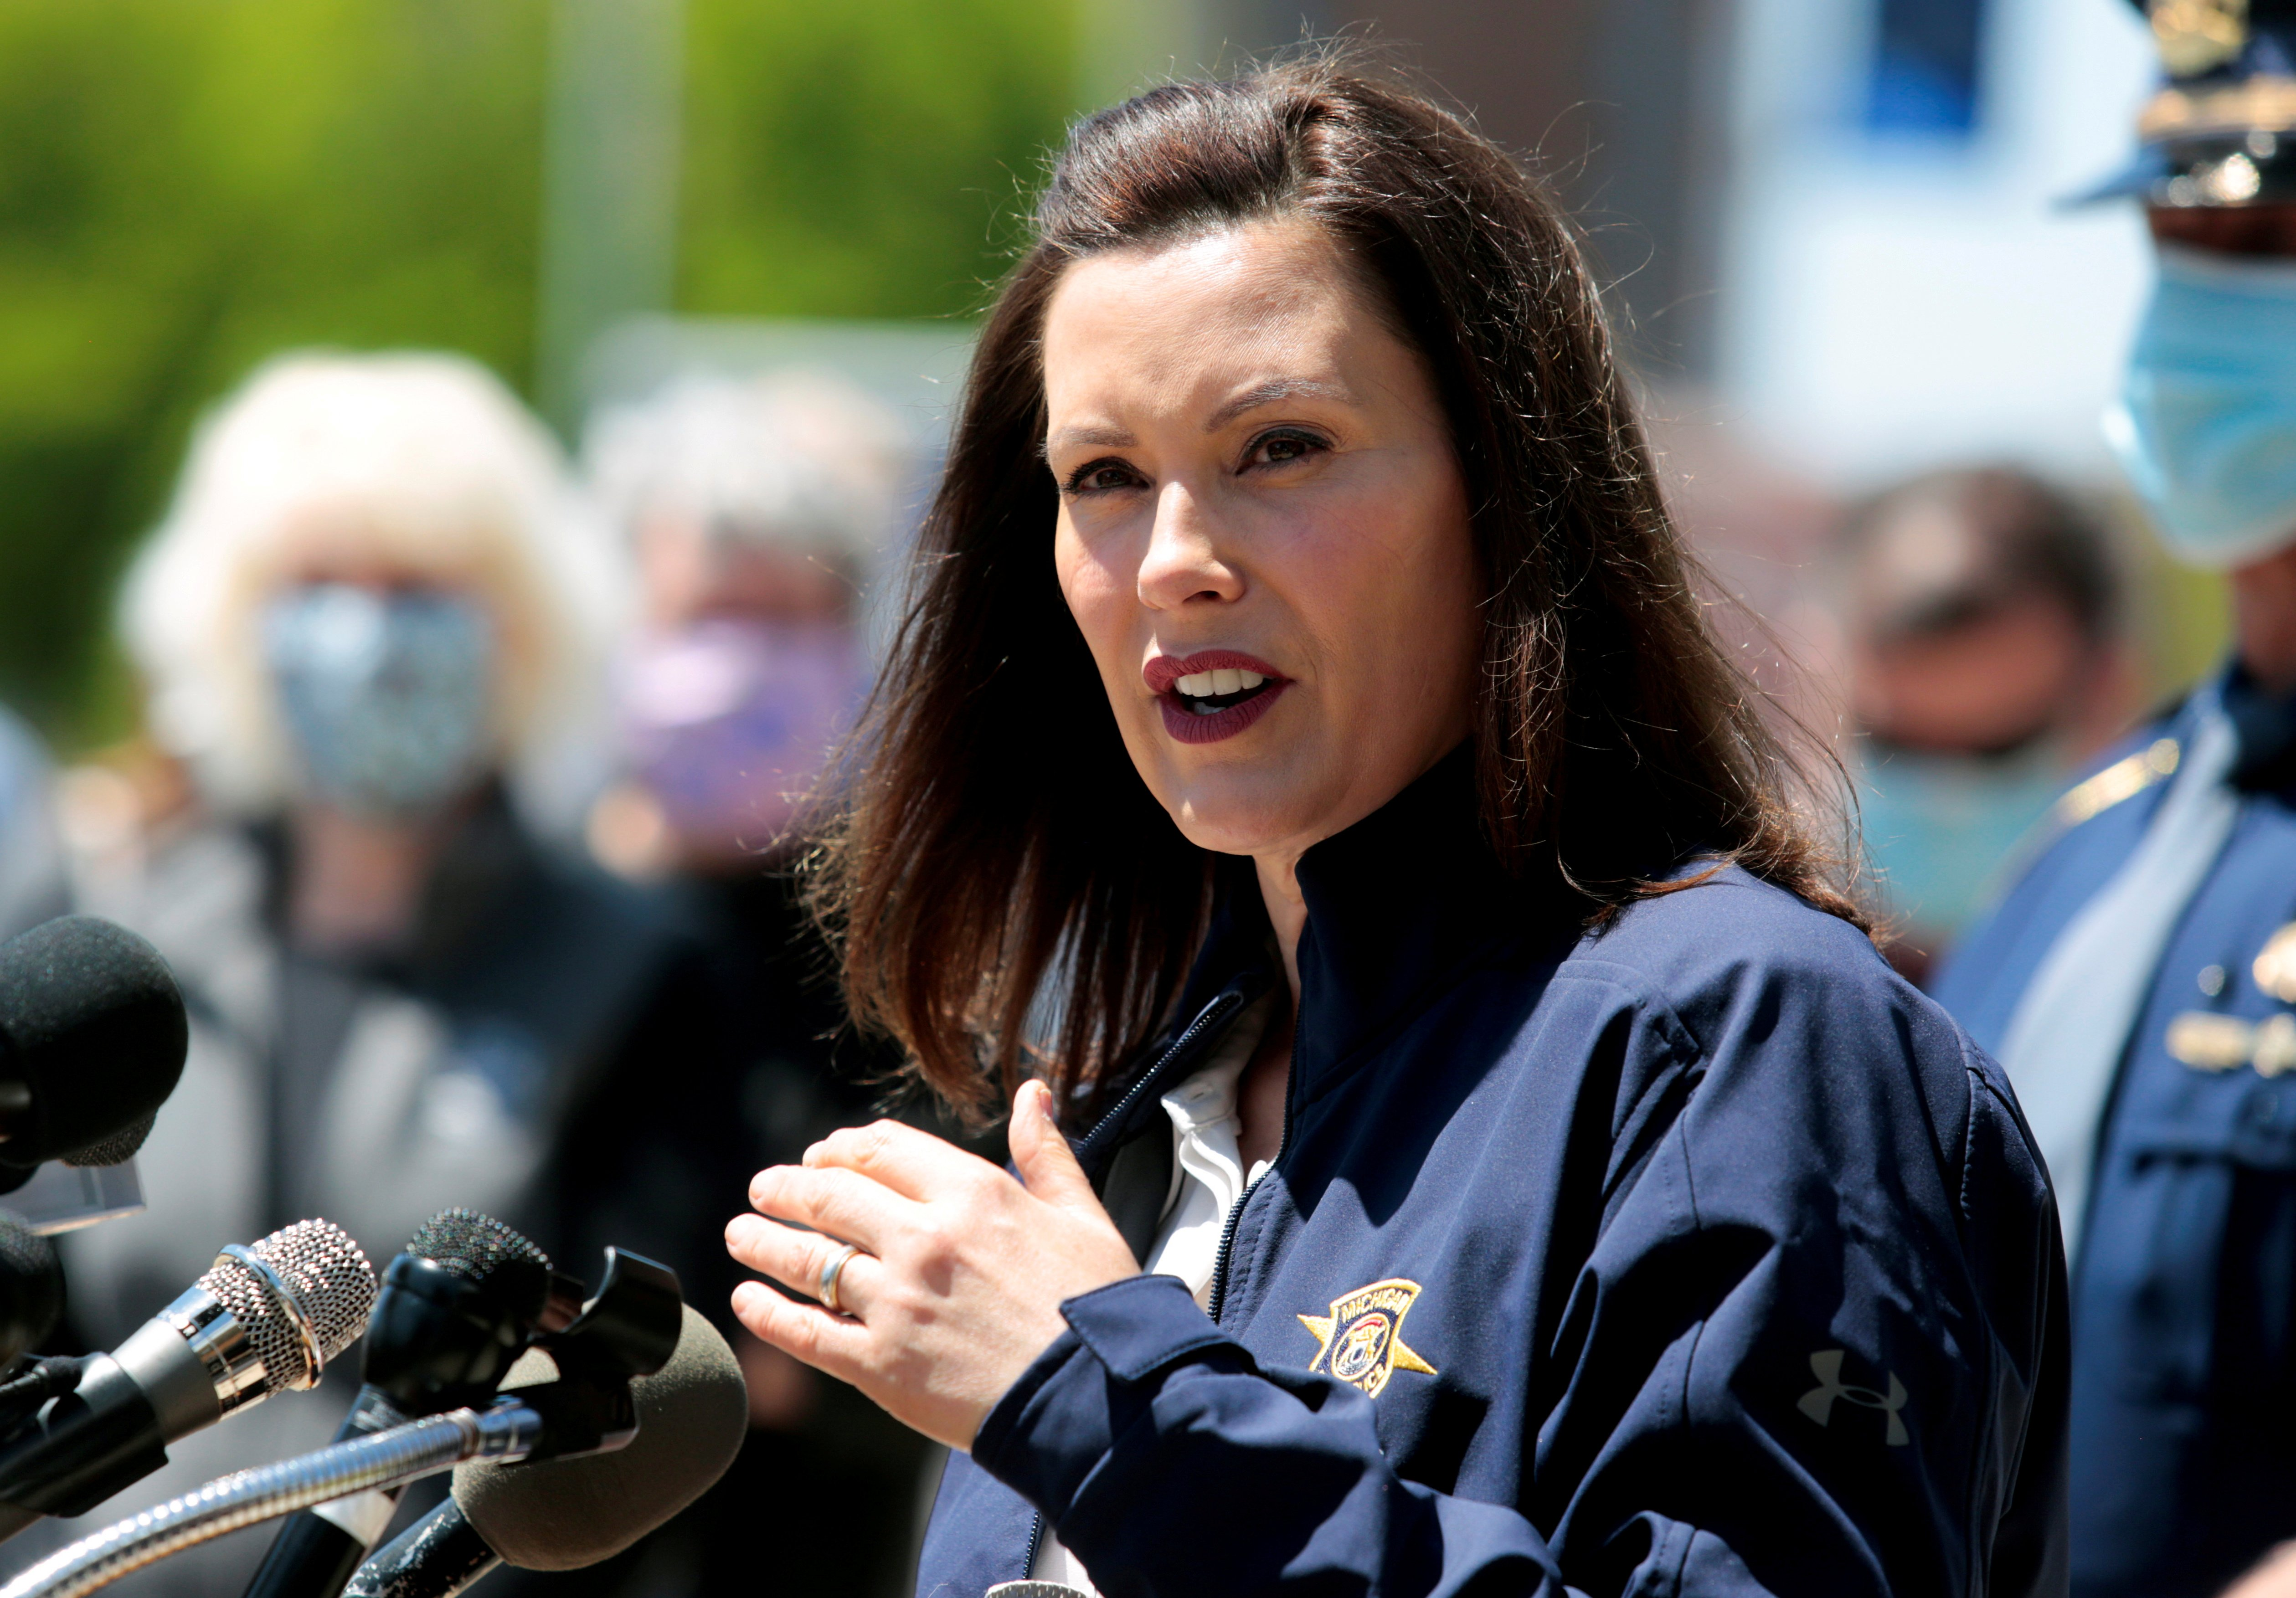 FILE PHOTO: Michigan Governor Gretchen Whitmer addresses the media about the flooding along the Tittabawassee River, after several dams breached, in downtown Midland, Michigan, U.S., May 20, 2020. REUTERS/Rebecca Cook